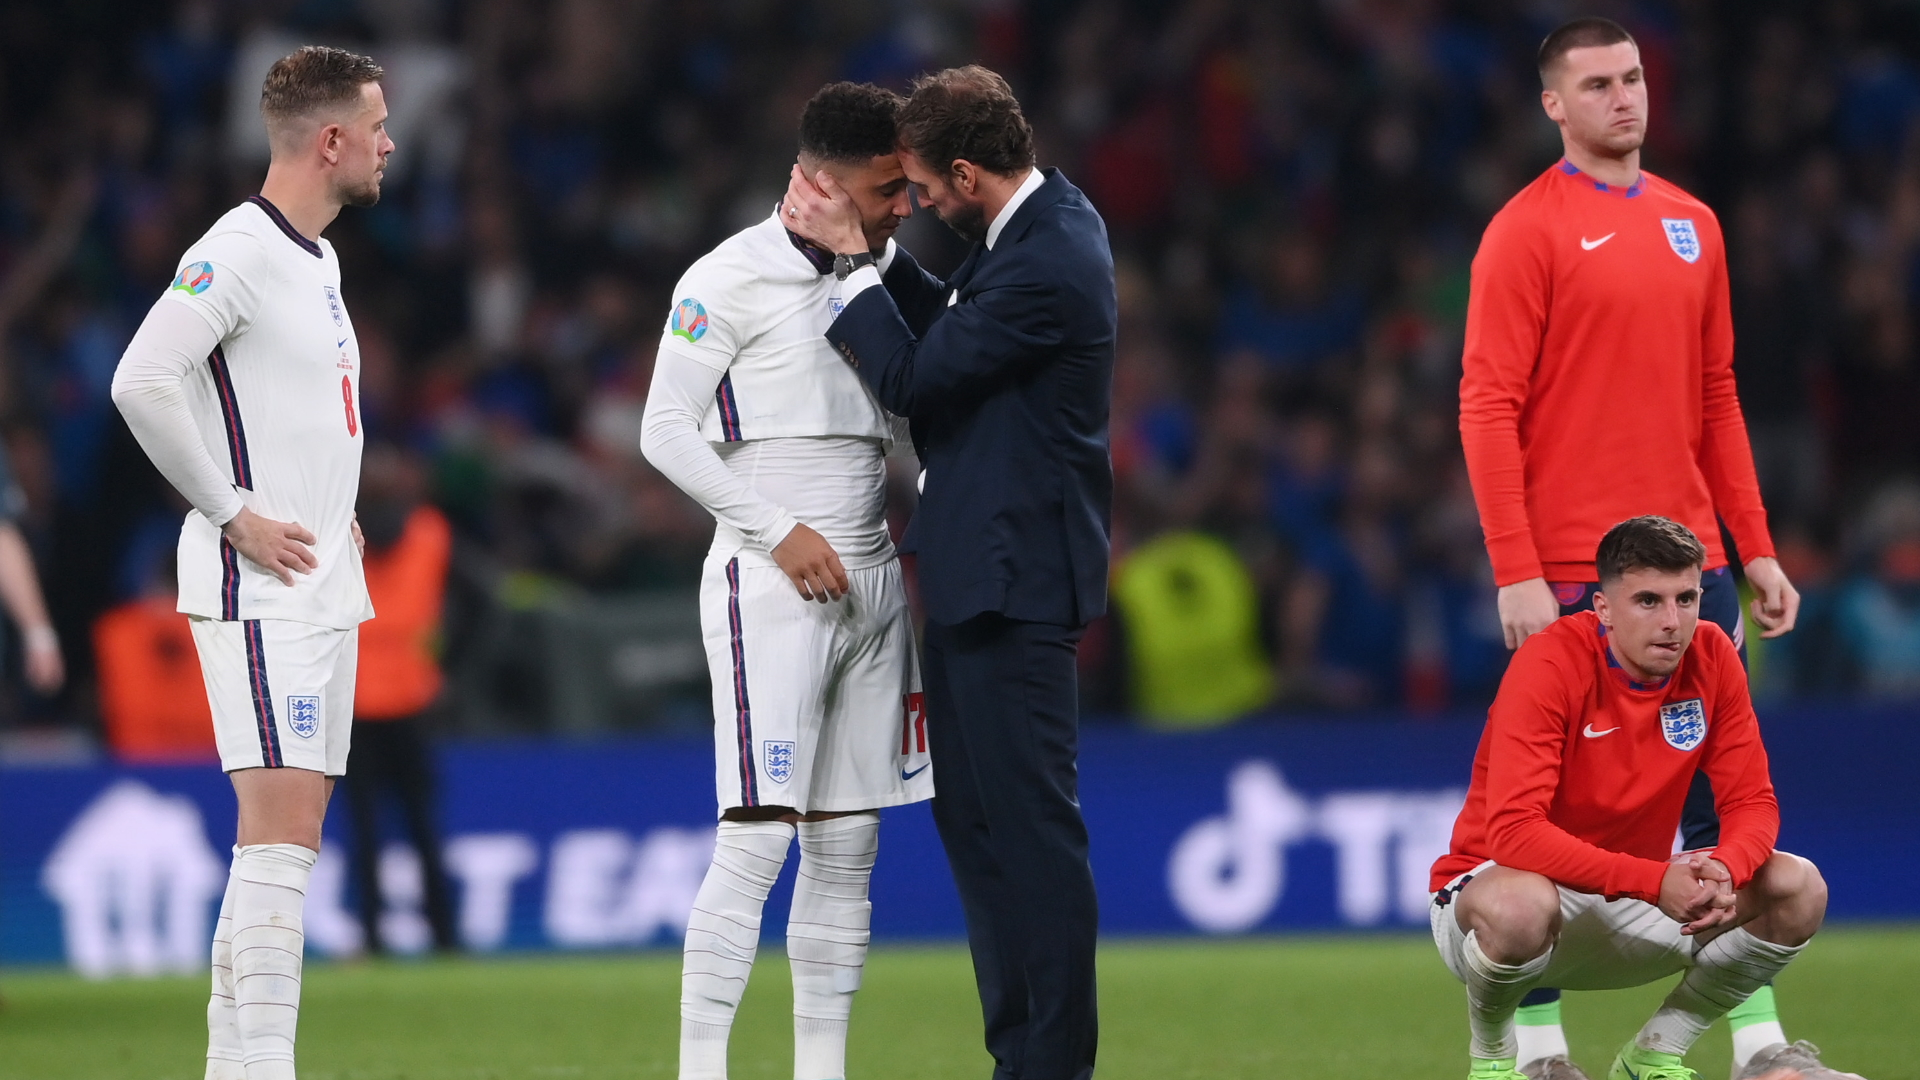 England ordered to play behind closed doors following Euro 2020 final incidents at Wembley